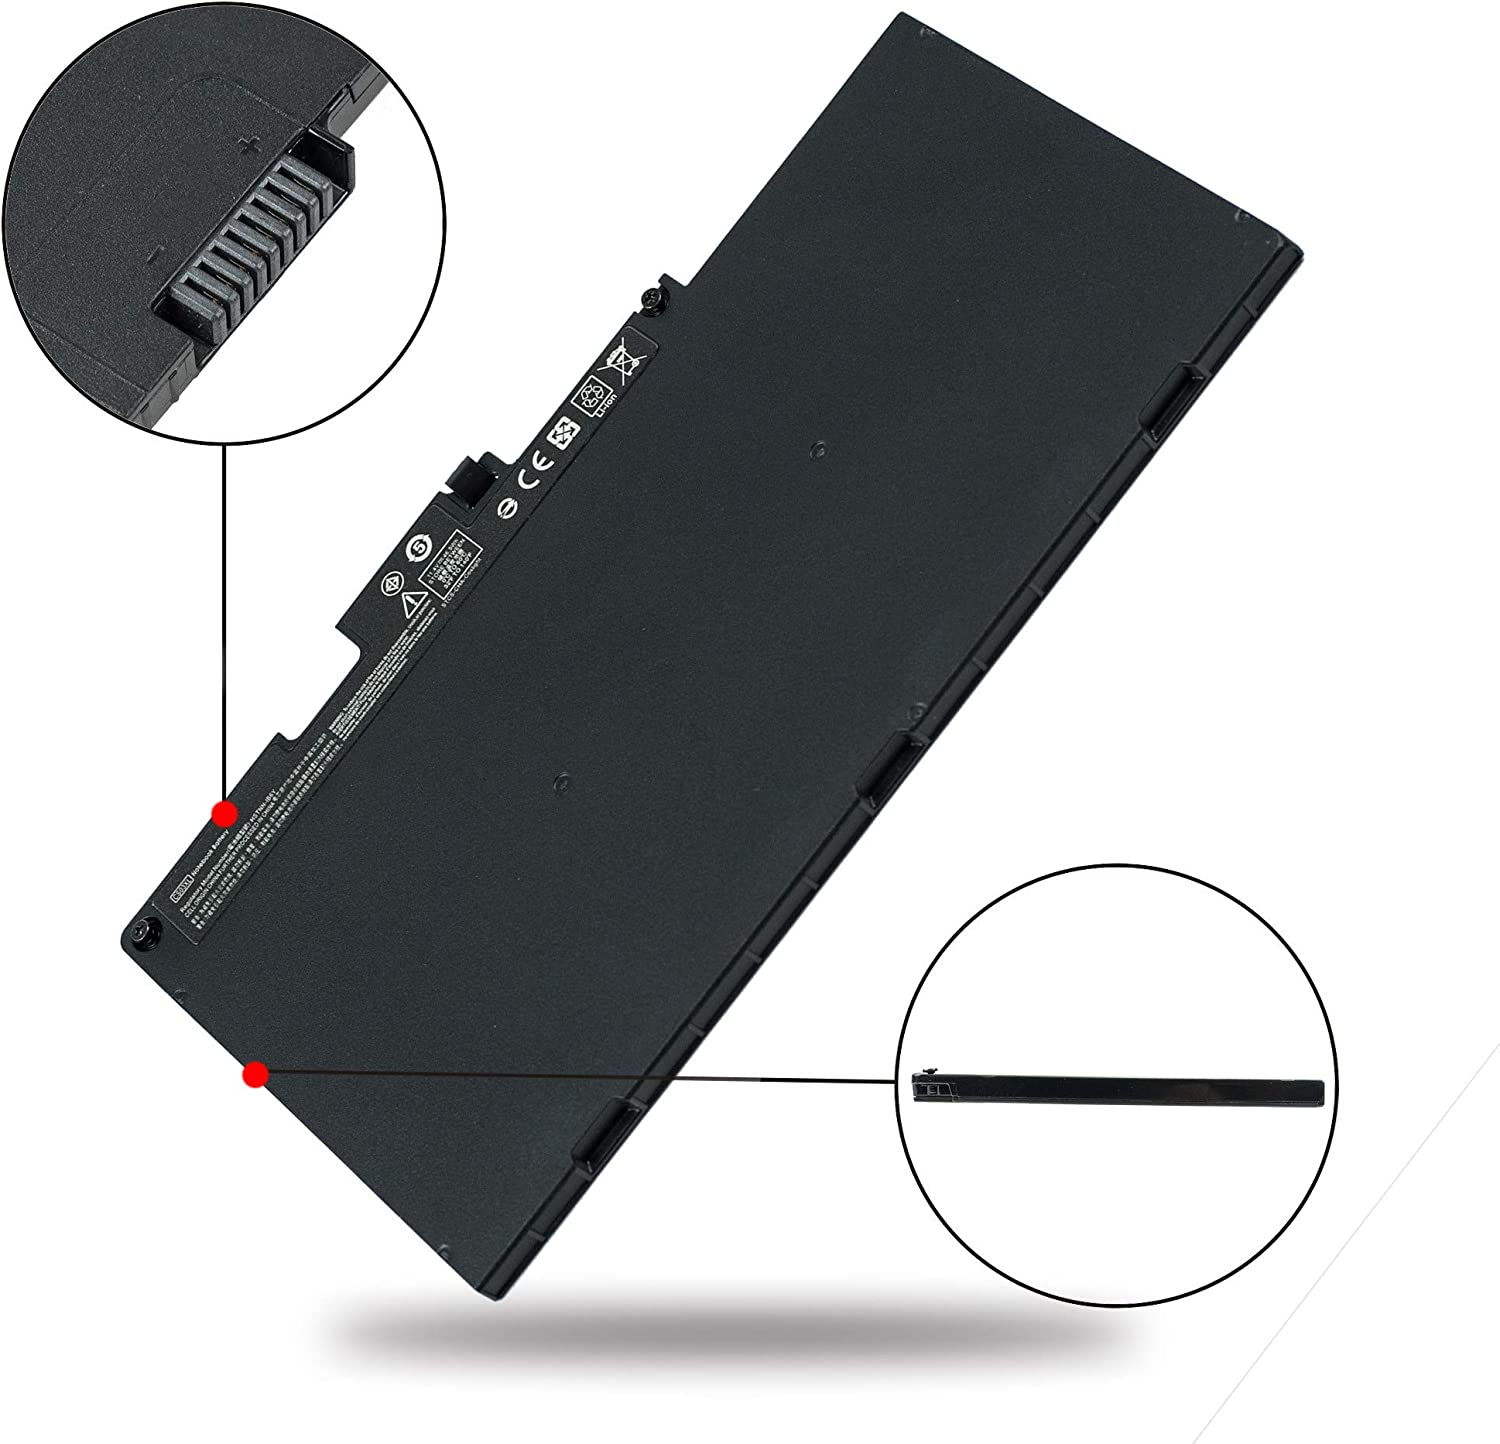 Aluo TA03XL 11.55V55Wh Replacement Laptop Battery for HP EliteBook 755 G4 EliteBook 840 G4 EliteBook 848 G4 EliteBook 850 G4 ZBook 14u G4 15u G4 Series 854047-1C1 854108-850 996QA101H TA03051XL